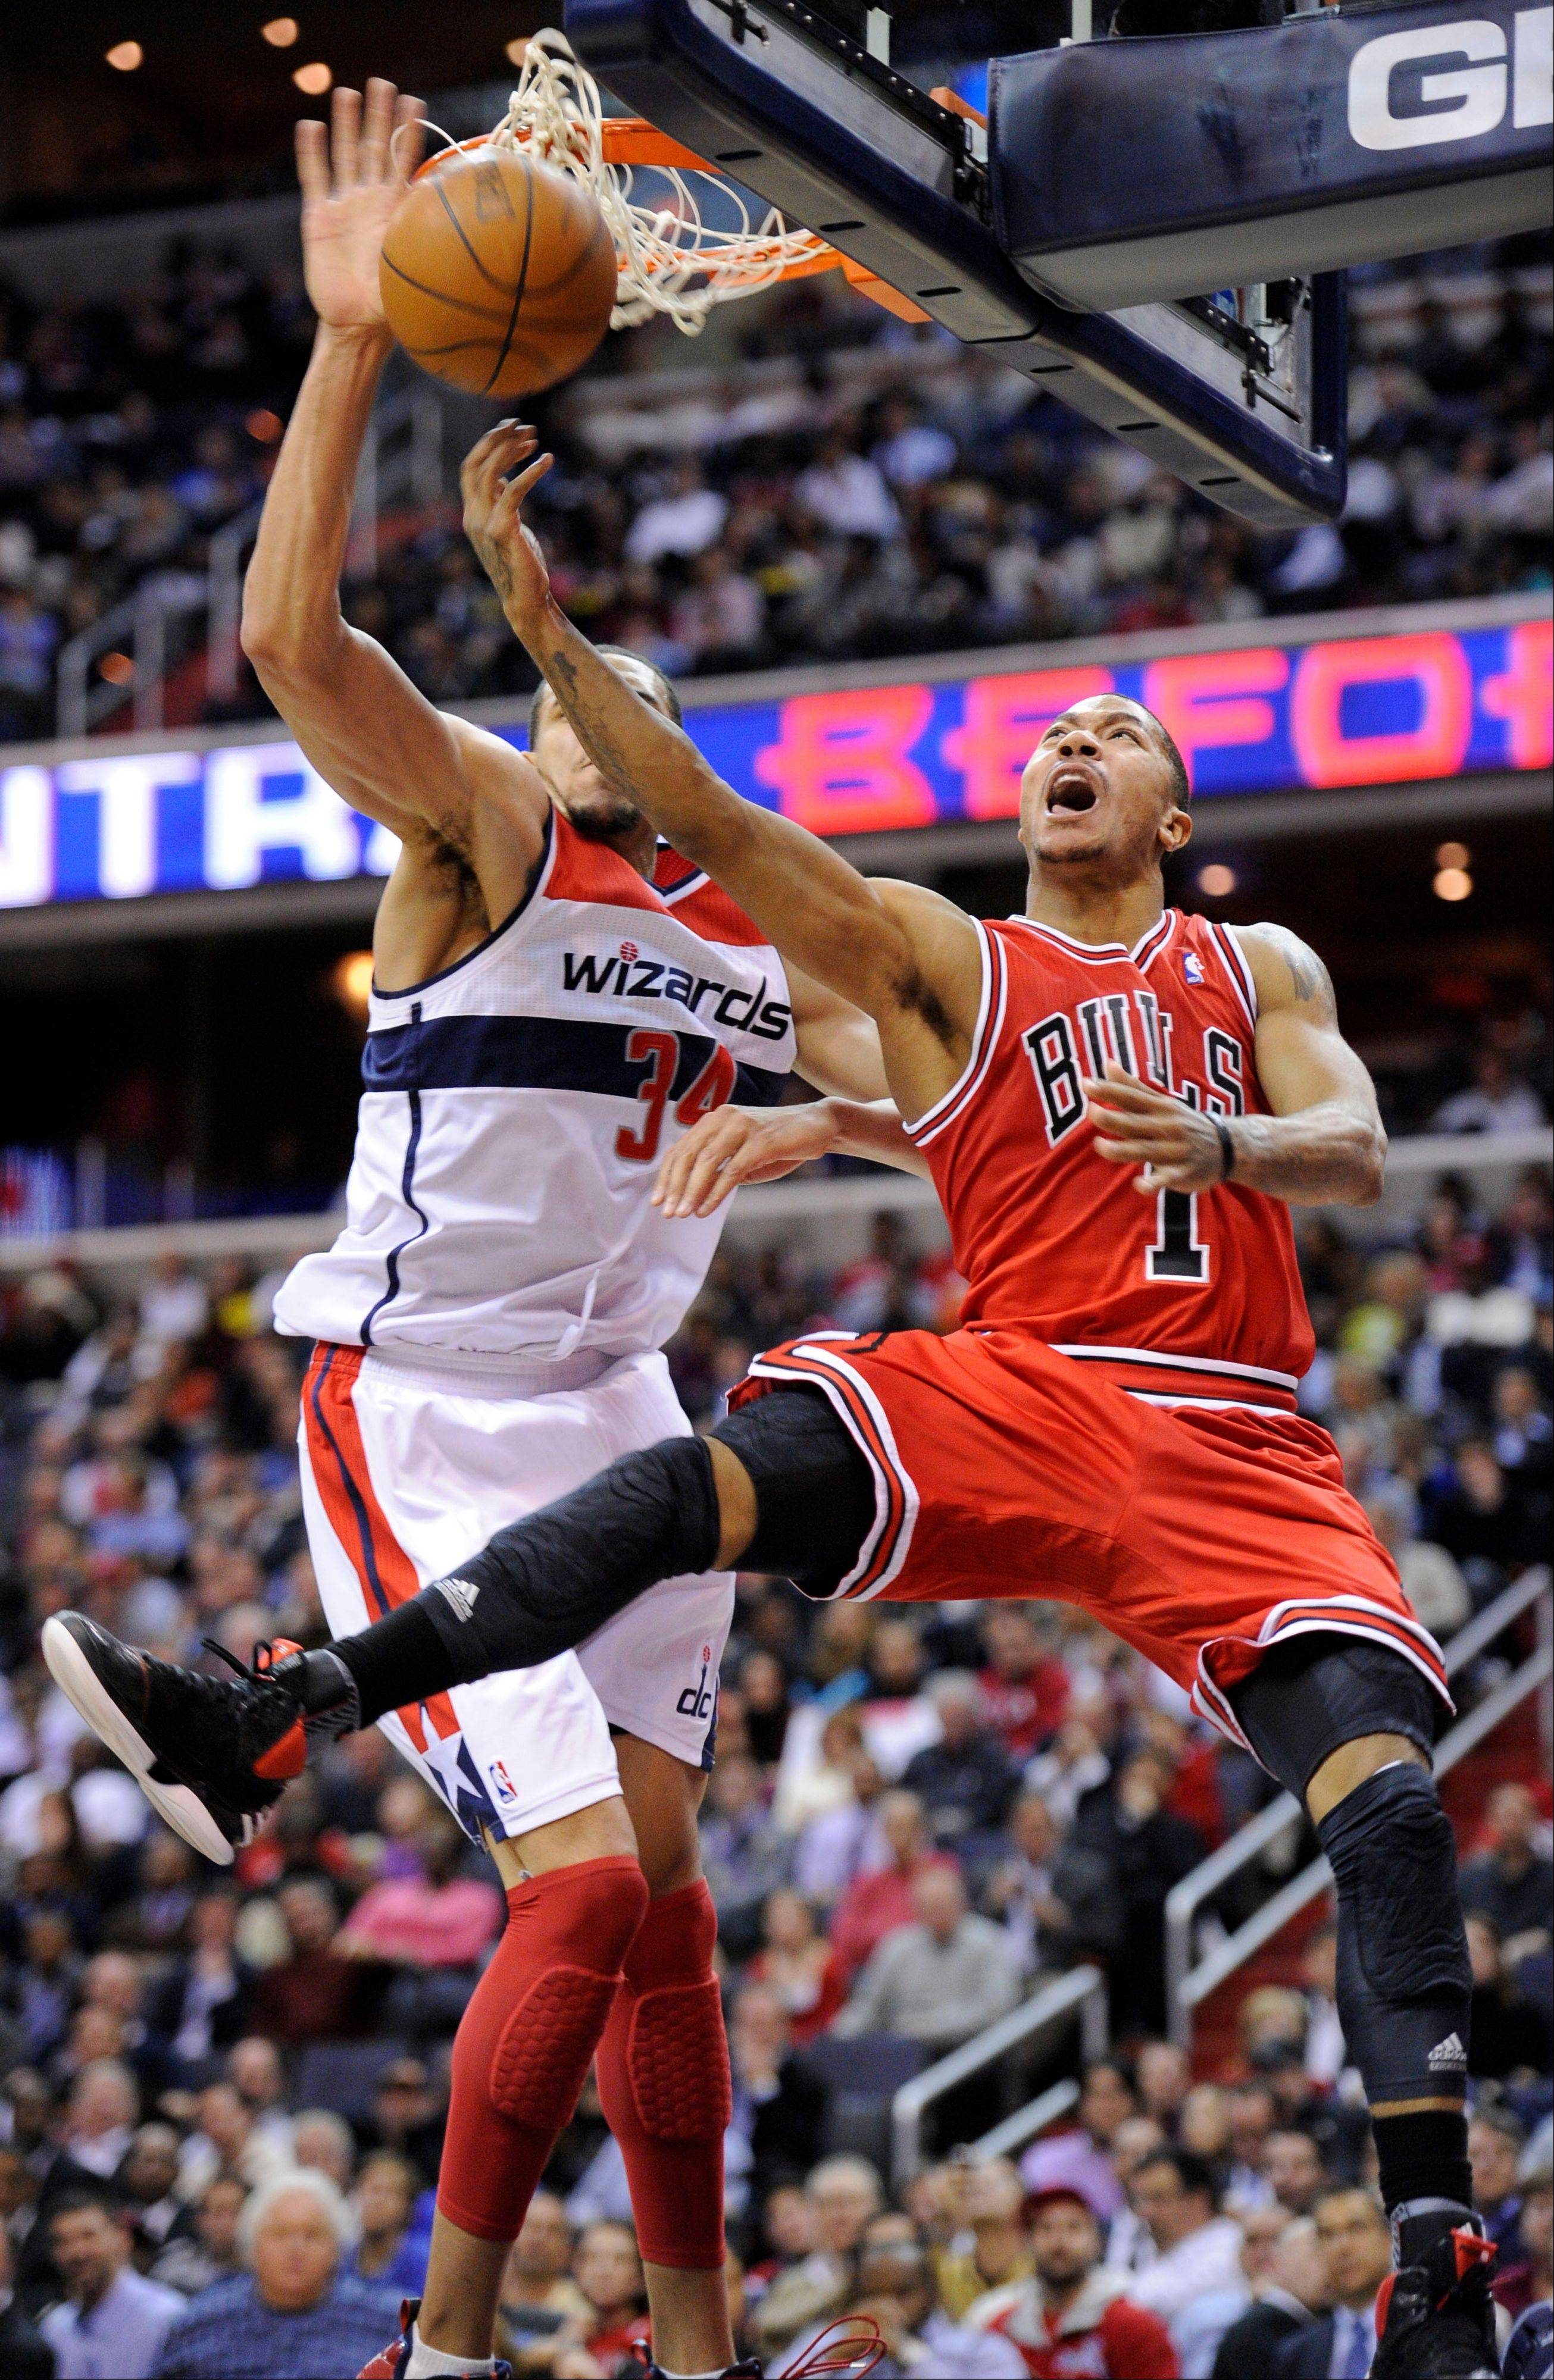 Chicago Bulls guard Derrick Rose (1) shoots a layup against Washington Wizards center JaVale McGee (34) during the first half of an NBA basketball game Monday in Washington.